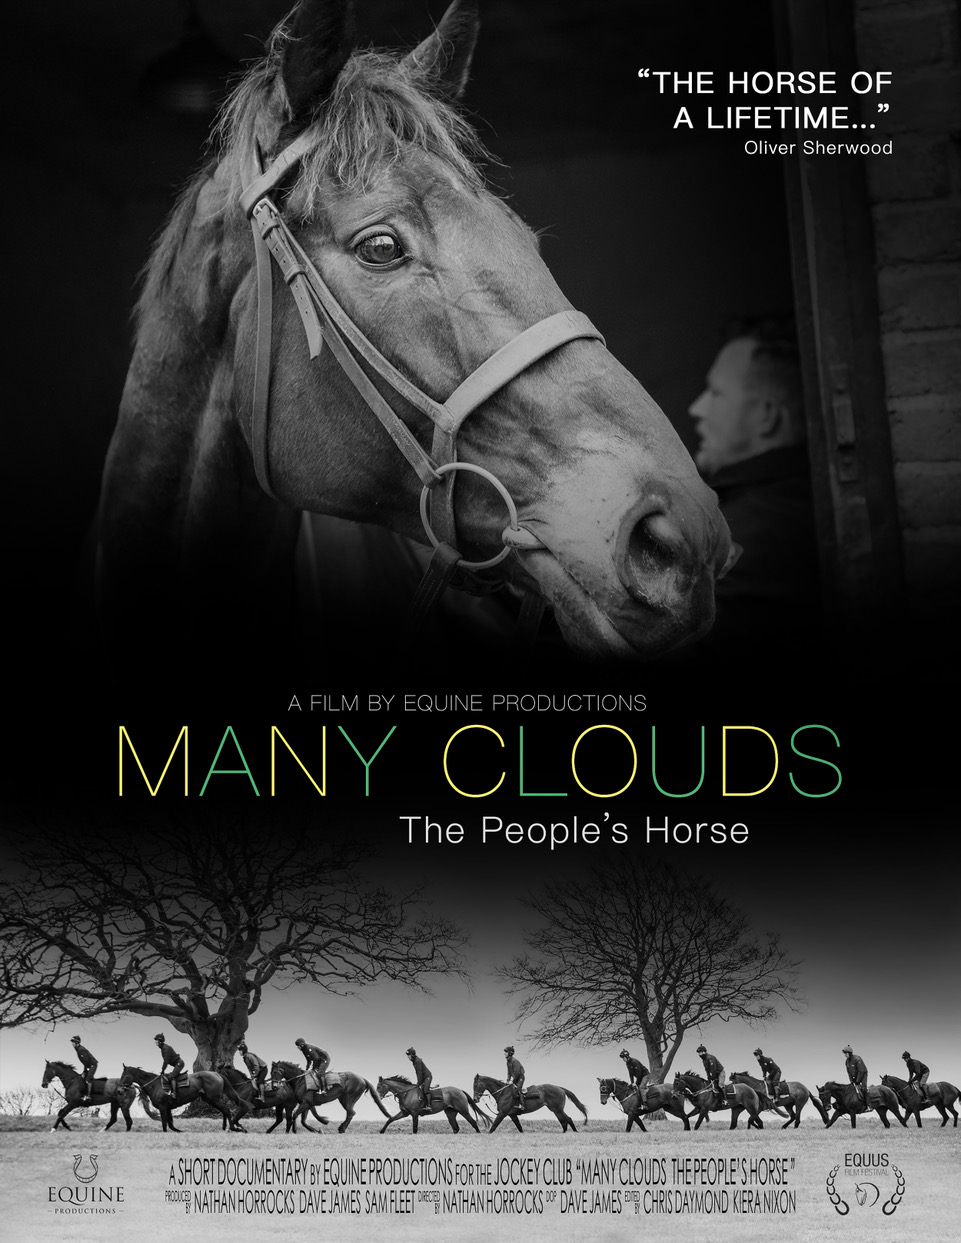 MANY_CLOUDS_EQUUS_Poster 3.jpeg